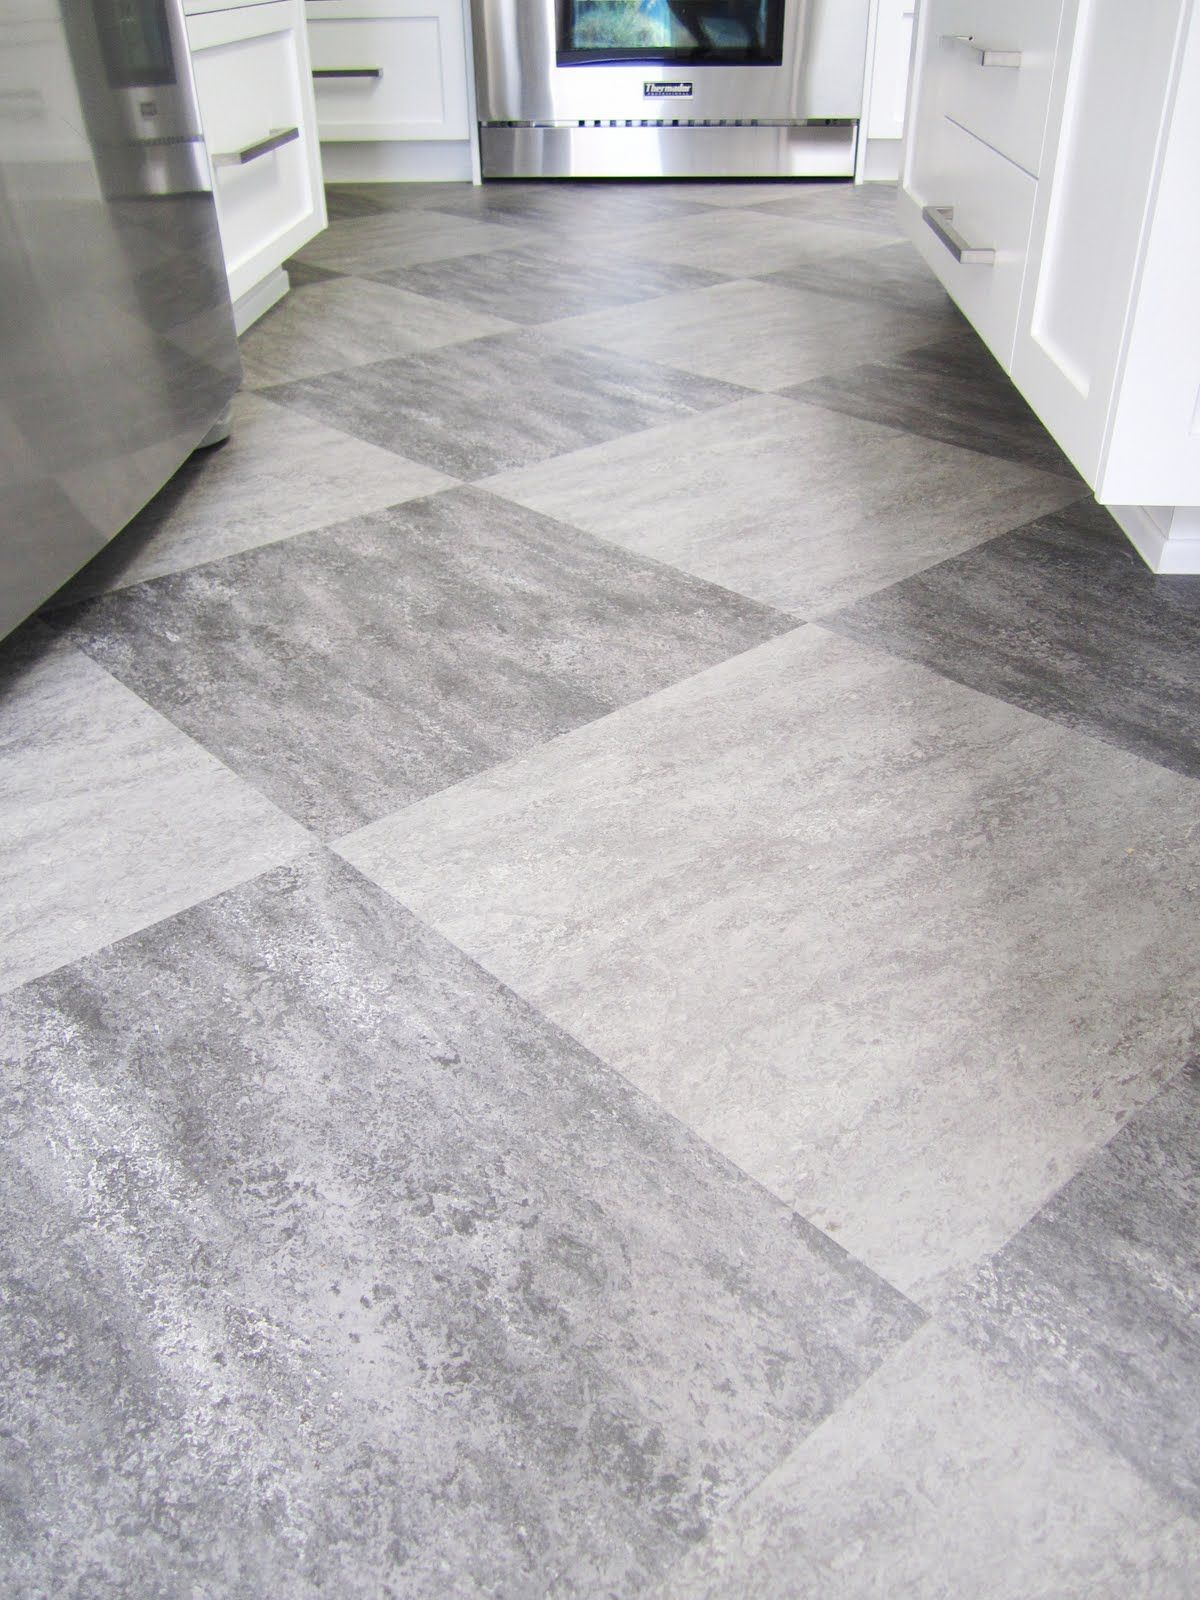 Floor Tile Patterns Kitchen Harlequin Tile Floors Harlequin Of Grey On Grey Tiles Is Used